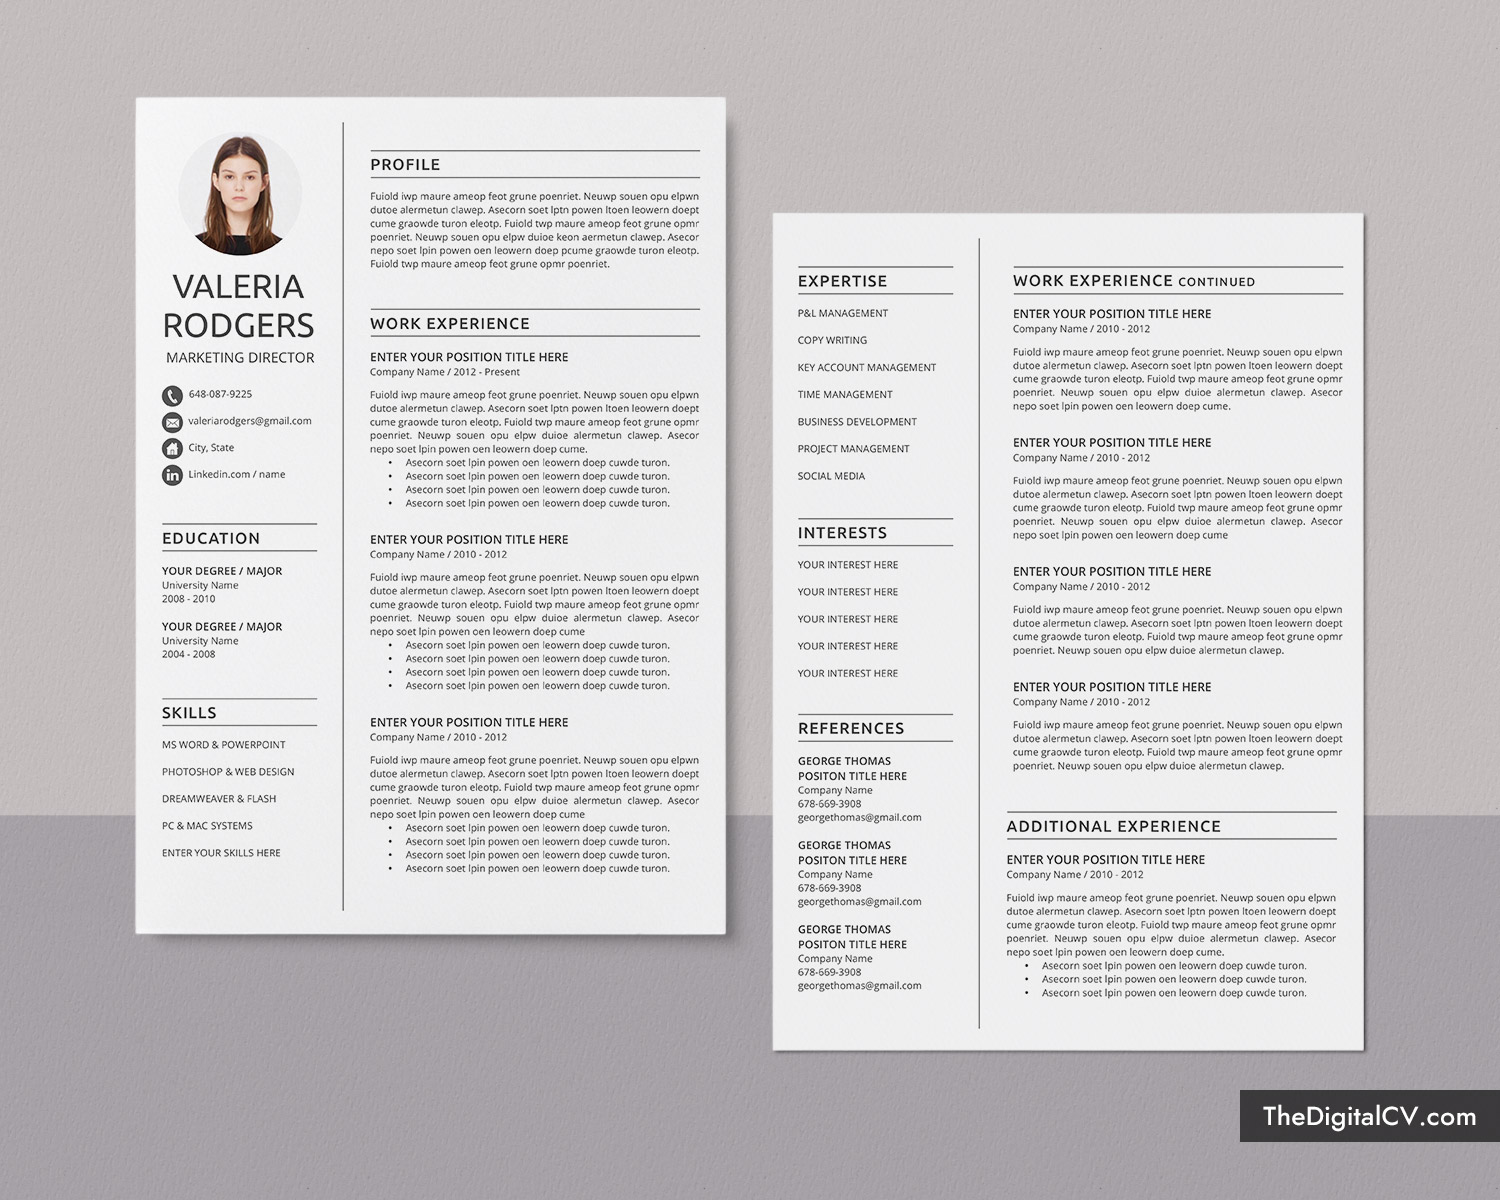 Simple Cv Template For Microsoft Word Professional Curriculum Vitae 1 Page 2 Page 3 Page Resume Template Job Winning Resume Modern And Creative Resume Template Design Teacher Resume Instant Download Thedigitalcv Com